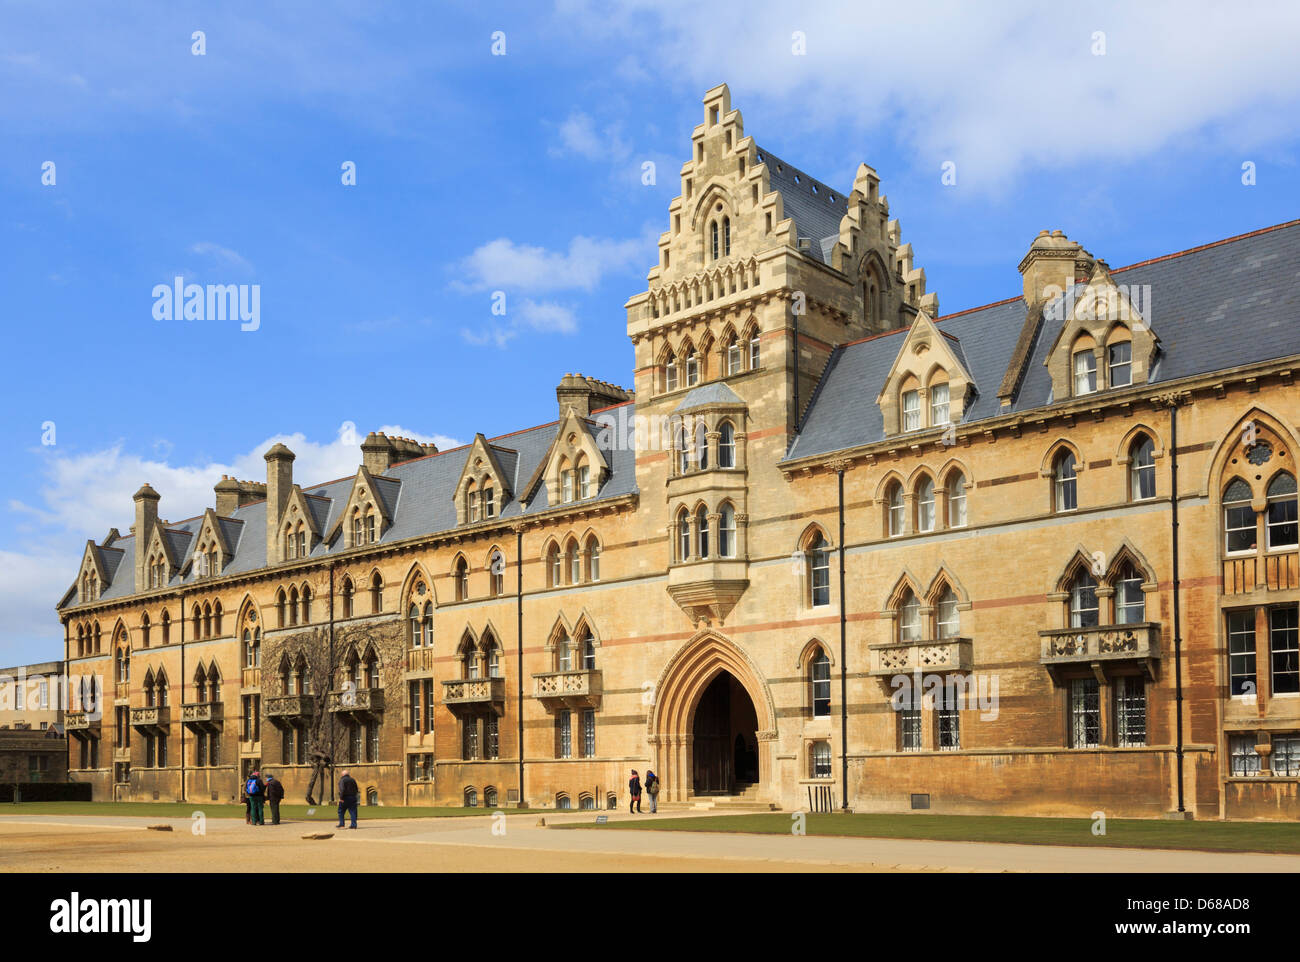 Meadow Building circa 1863 with main front entrance to Christ Church College in Oxford, Oxfordshire, England, UK, - Stock Image